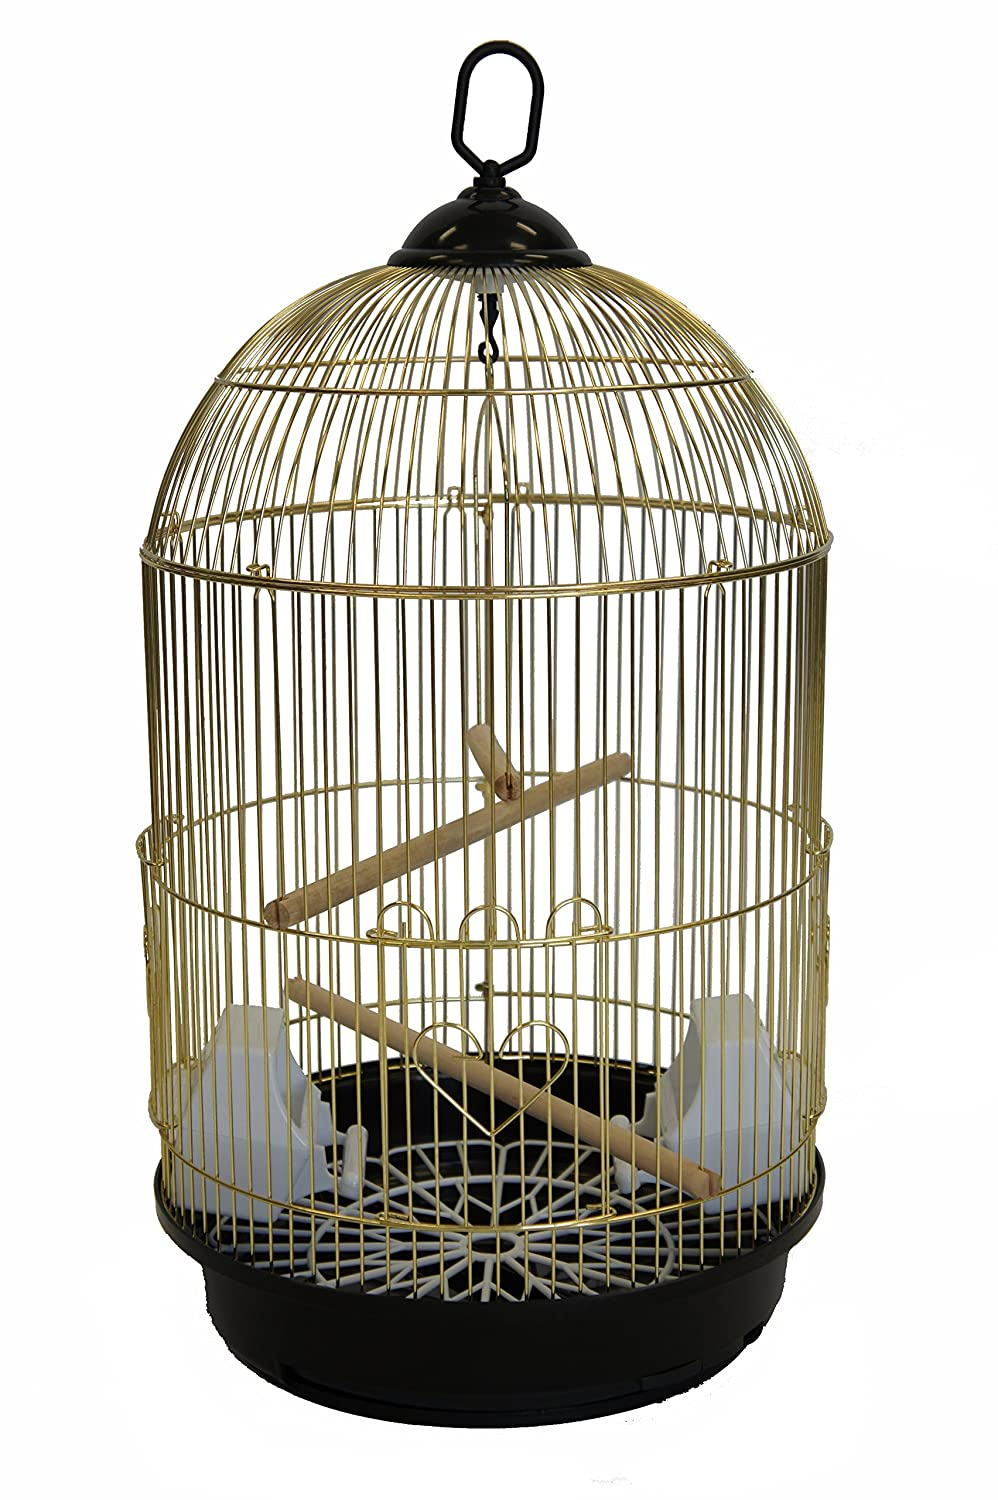 YML A1564 Bar Spacing Round Bird Cage, Small, Brass A1564BRASS